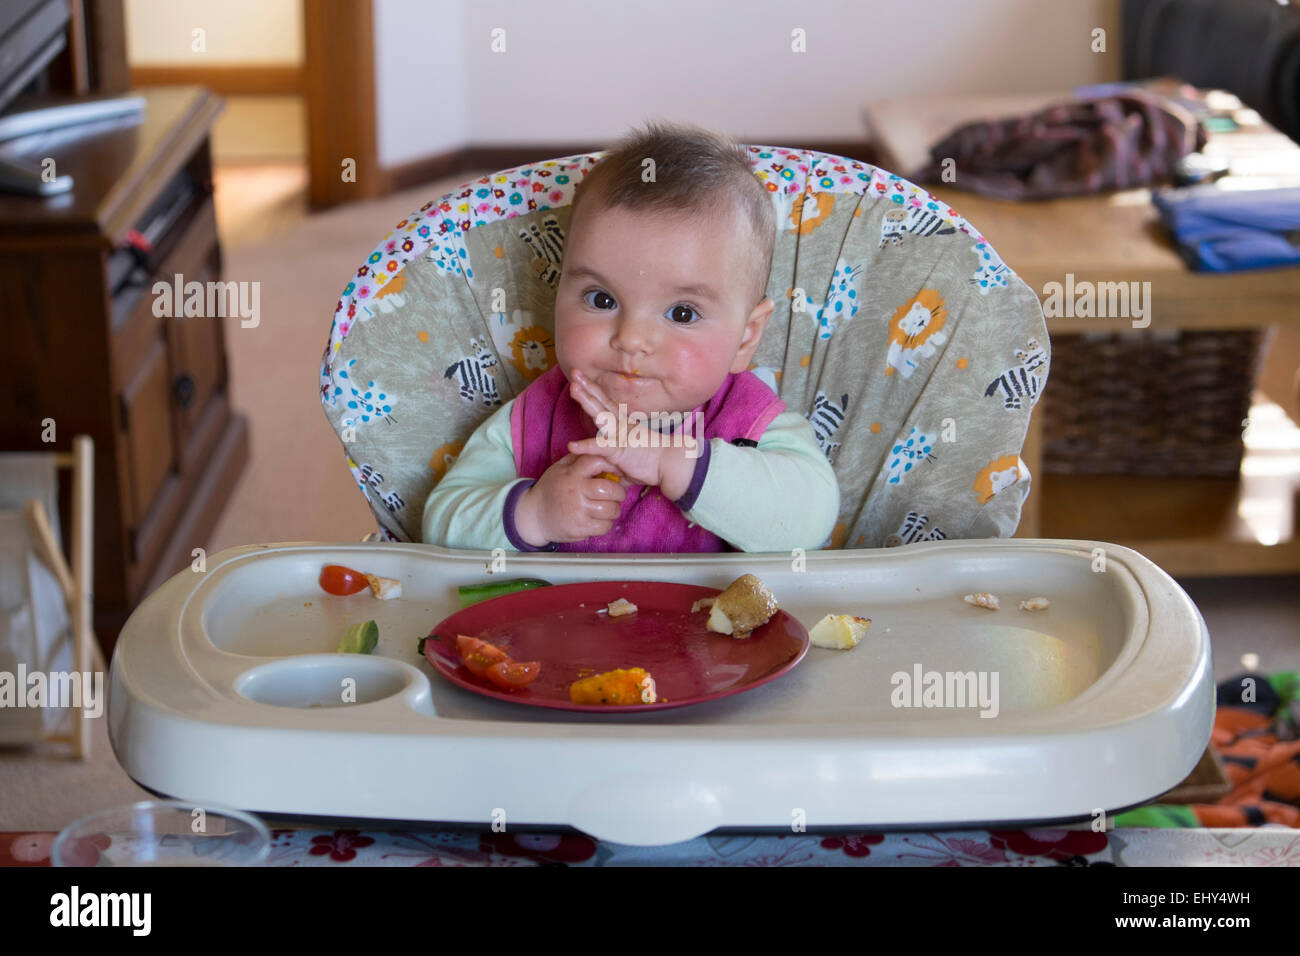 Baby Food Chair 8 Month Old Baby Girl Eating Food In High Chair Stock